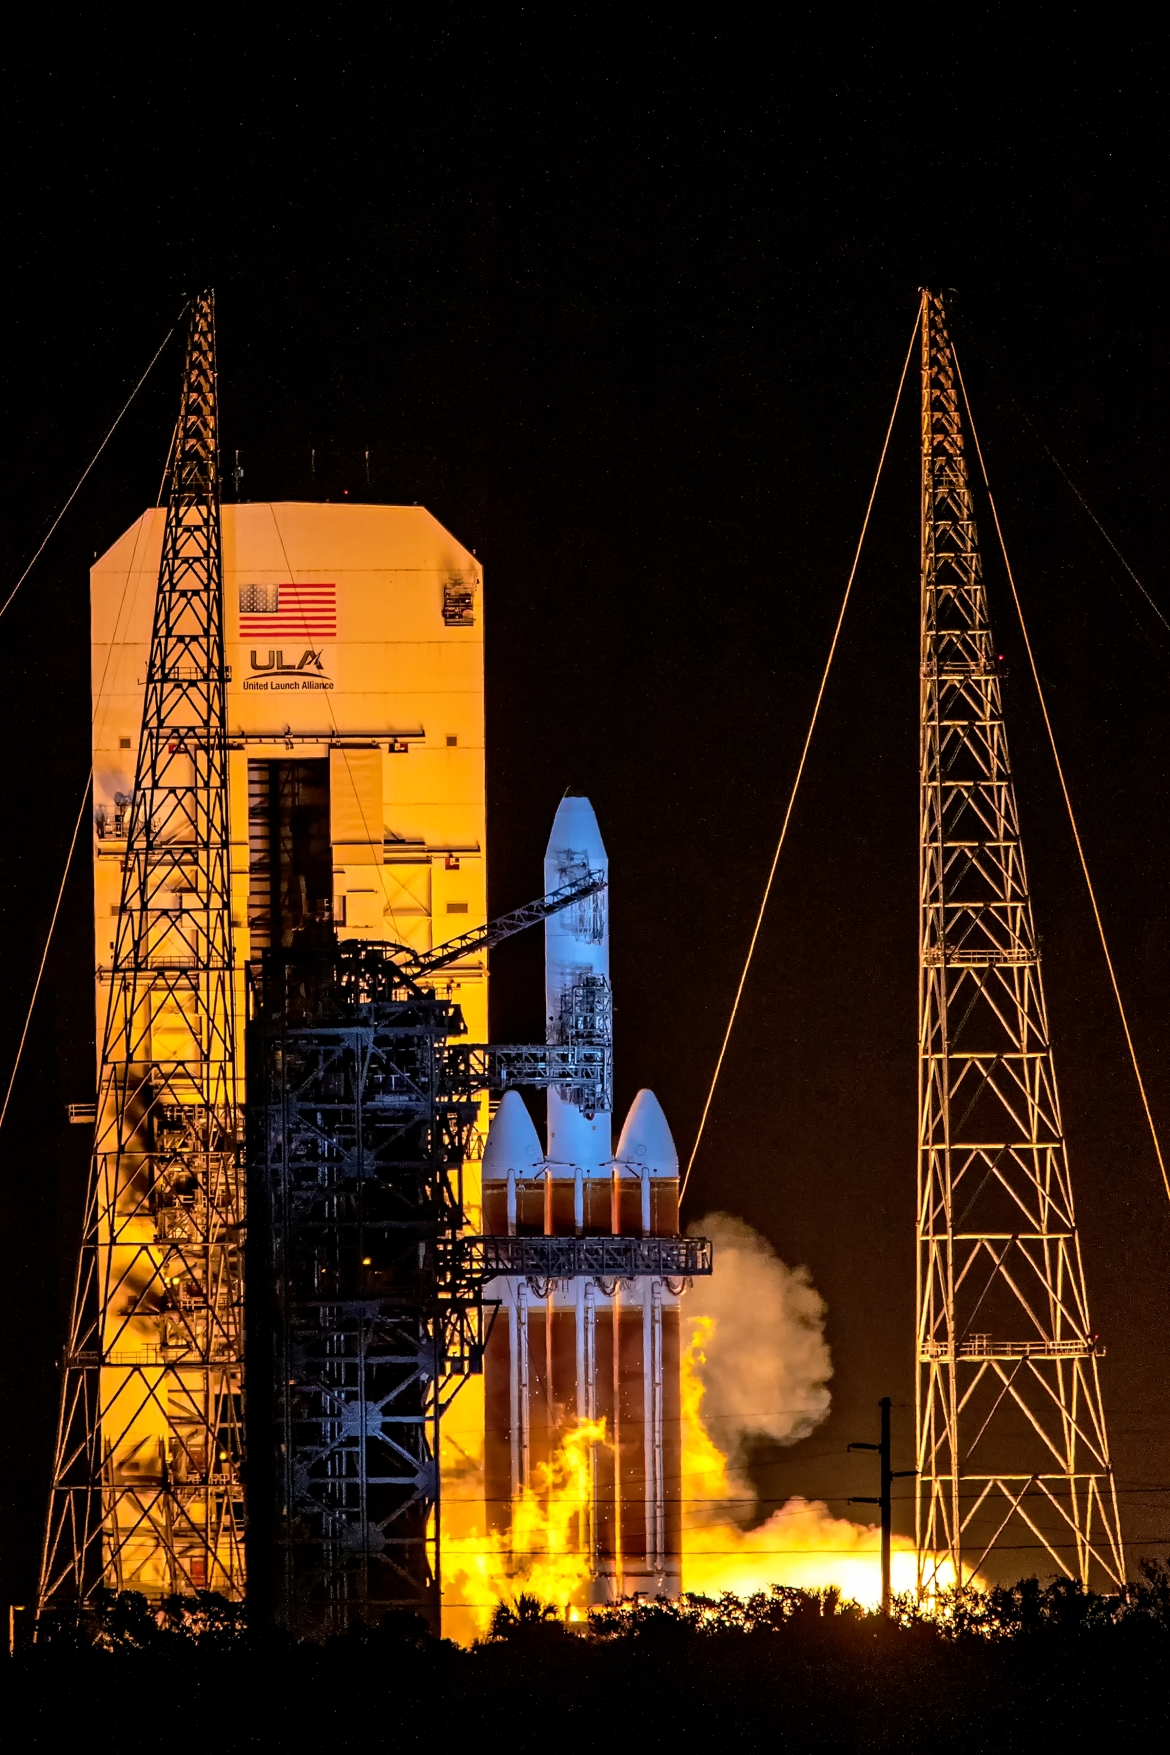 United Launch Alliance Delta IV Heavy carrying a classified satellite for the National Reconnaissance Office. This was a hot launch abort with three seconds to go before liftoff. [Michael Tracy/Al Jazeera]